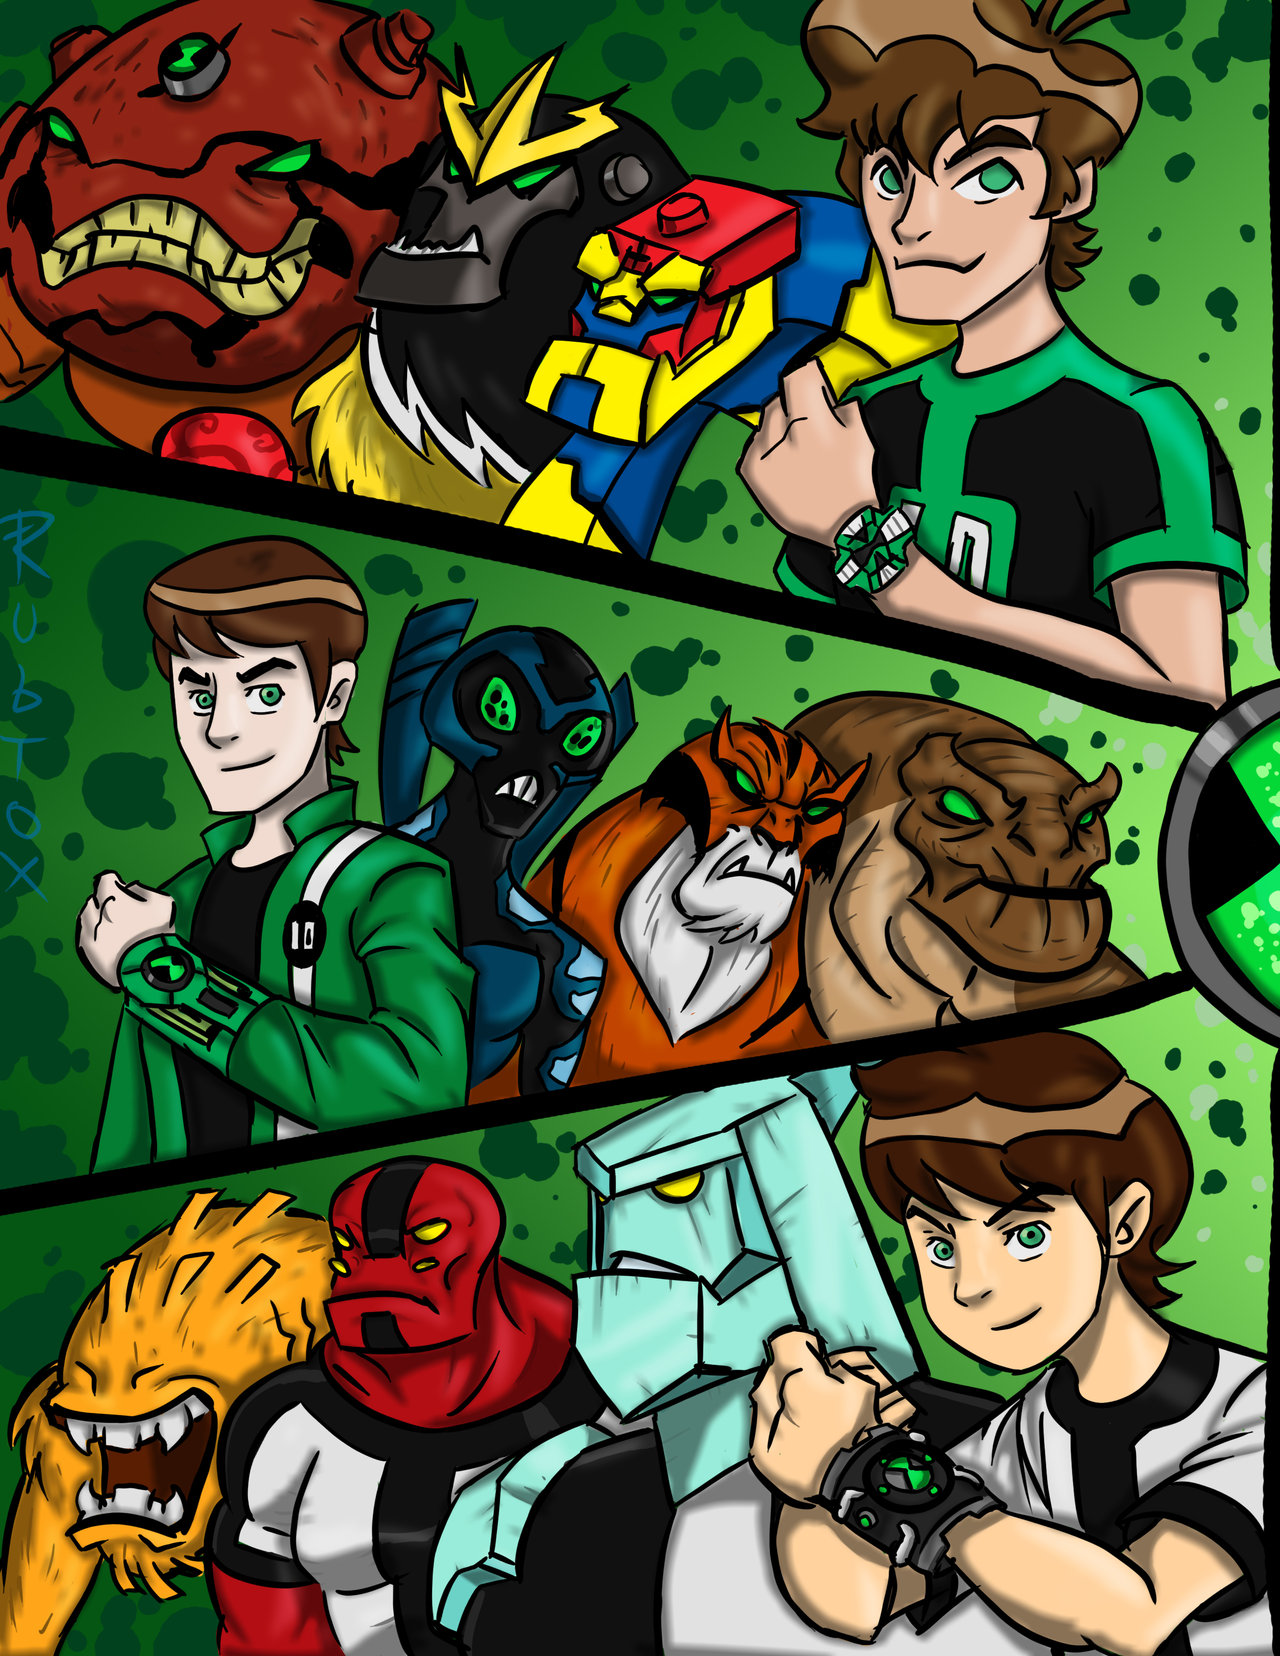 ben 10 team friend